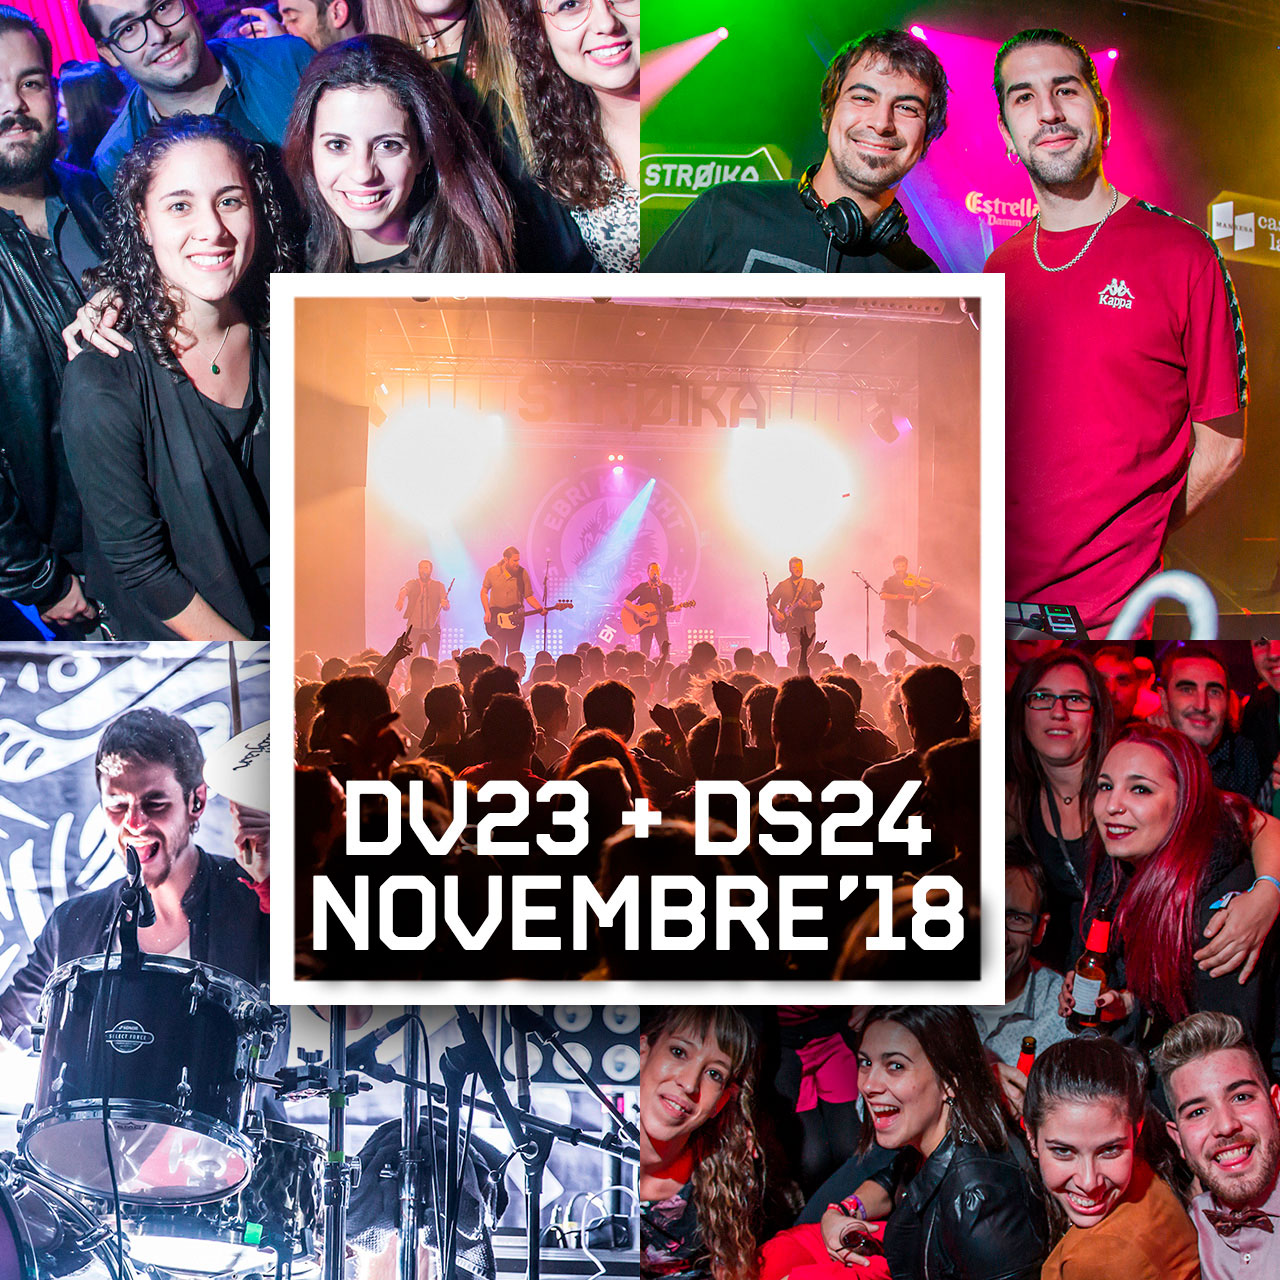 DV23 +DS24 NOV'18 // EBRI KNIGHT +PRESIDENT XAI +STROIKA SESSIONS